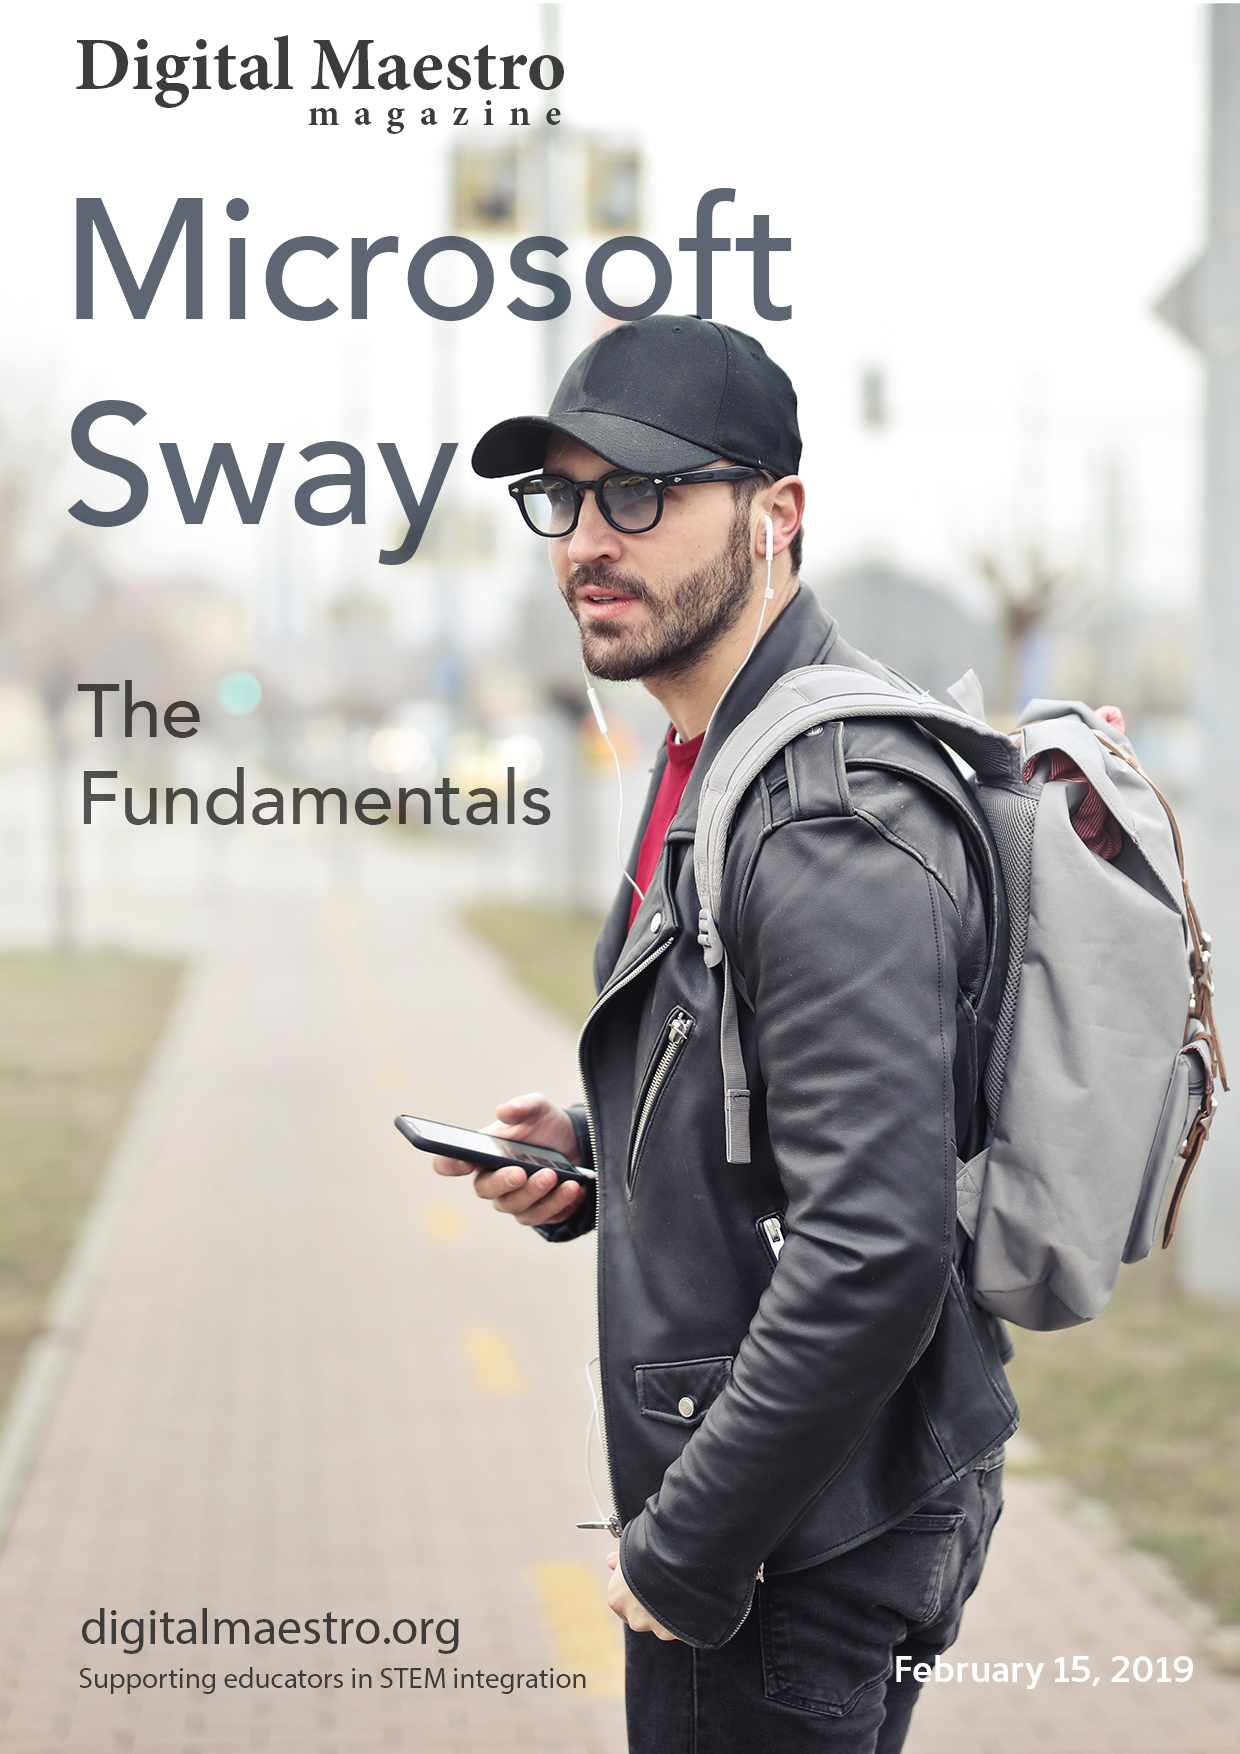 Microsoft Sway - Learn the fundamentals for using Microsoft Sway. Create a student project complete with images and animation.